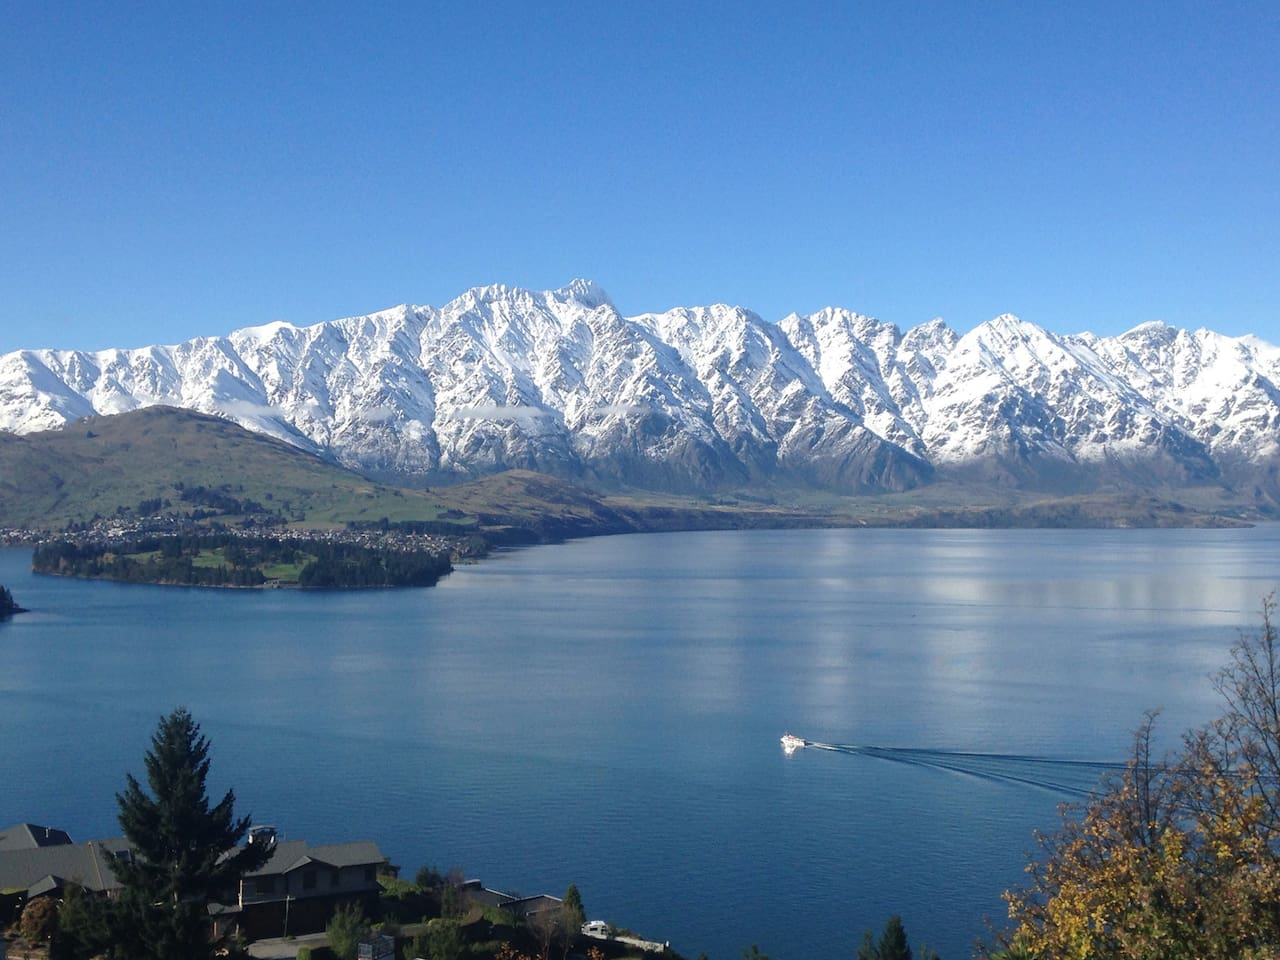 The Remarkable Mountains & Lake View from the House